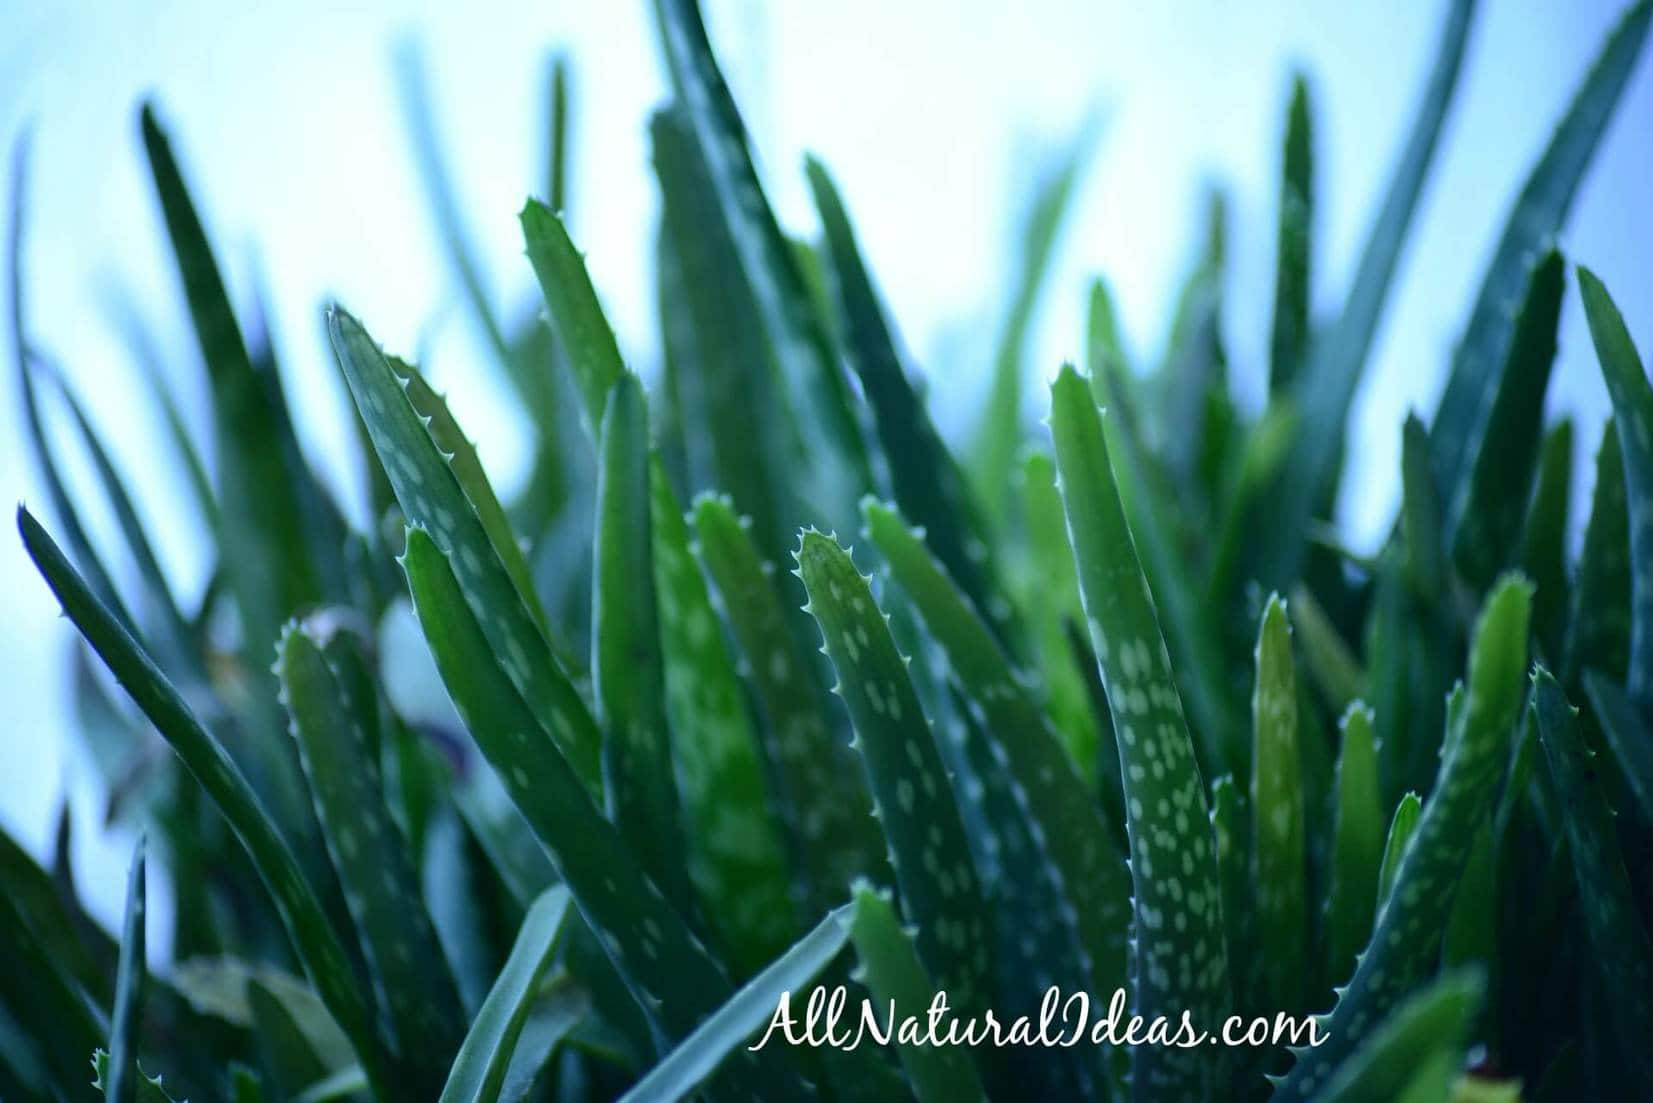 Aloe vera internal use benefits